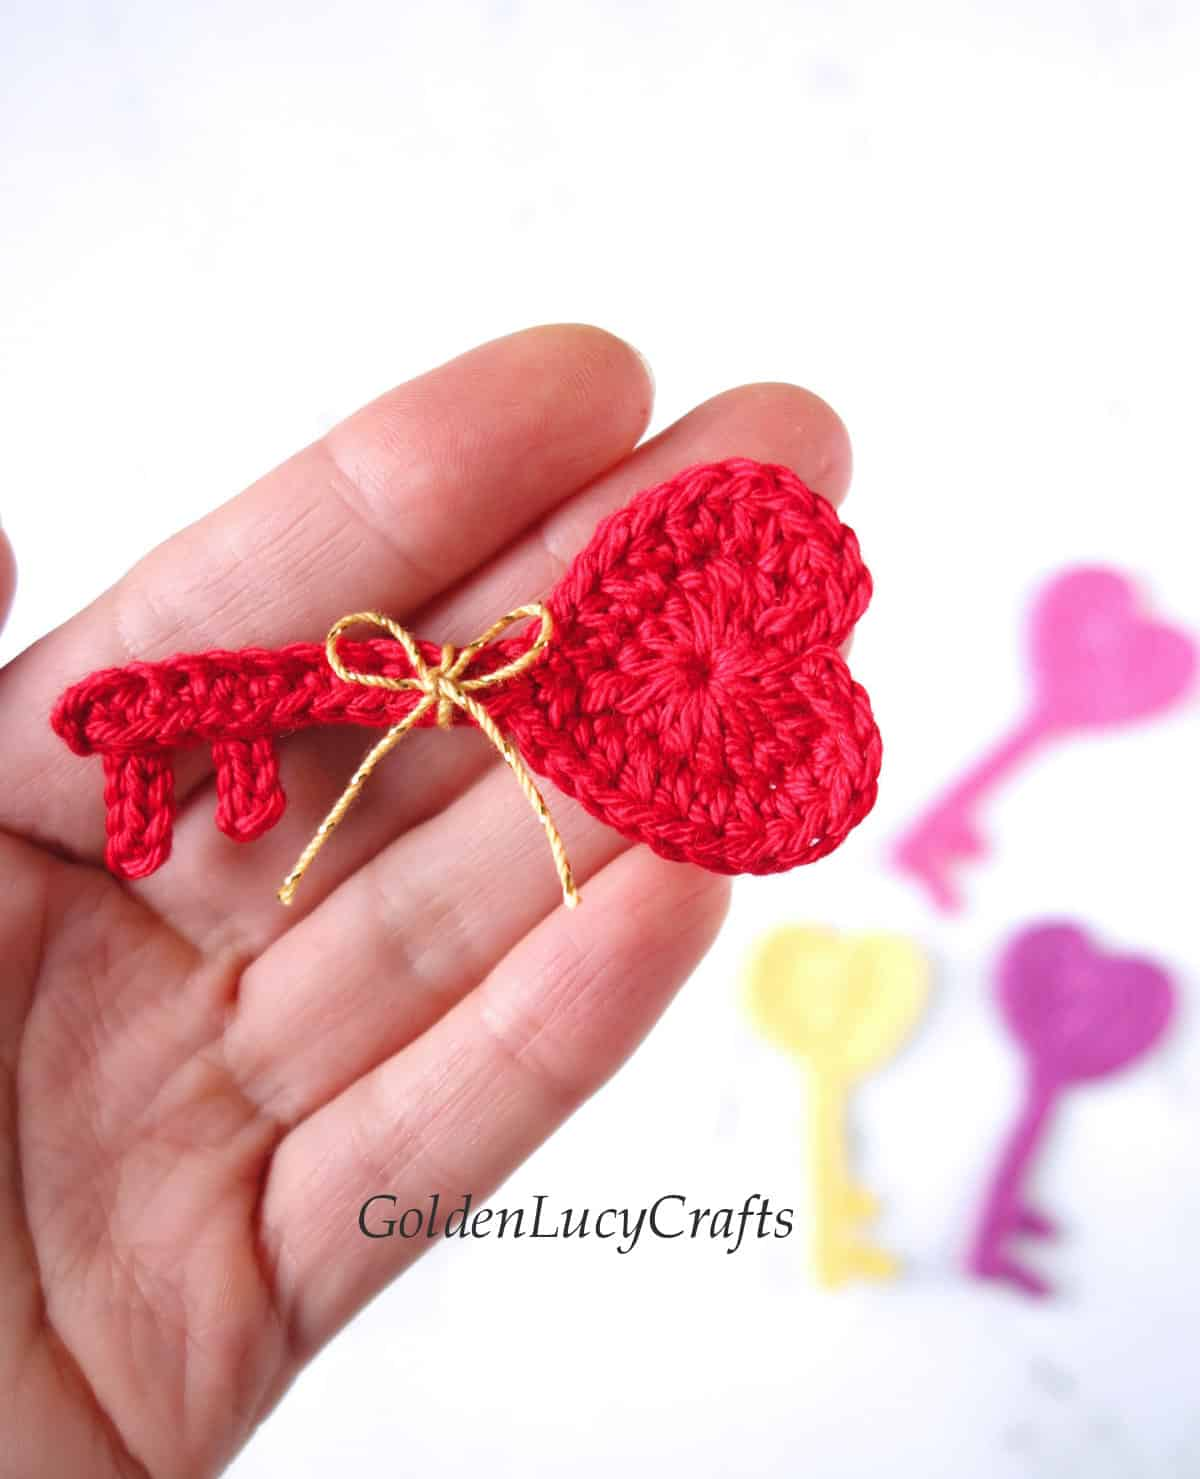 Crochet heart-shaped key applique in the palm of a hand.